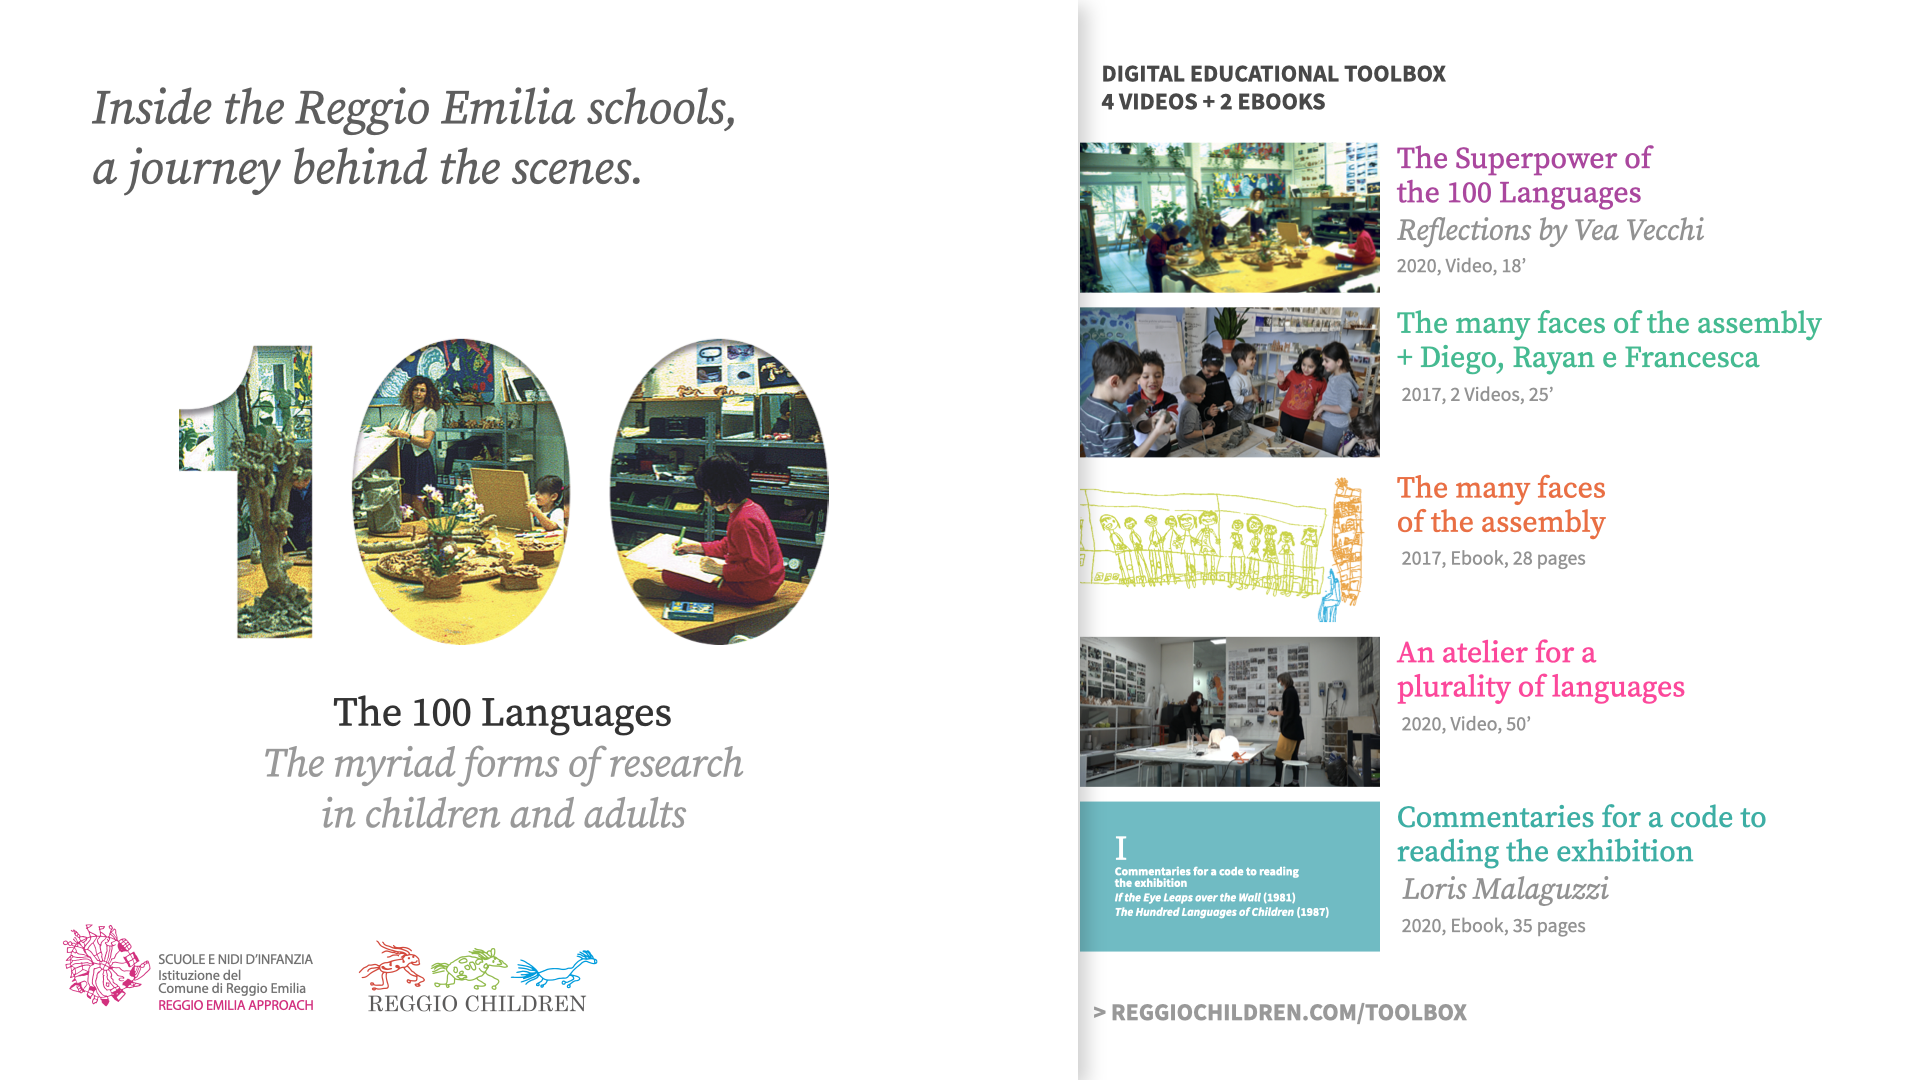 Inside the Reggio Emilia schools, a journey behind the scenes. The myriad forms of research in children and adults.